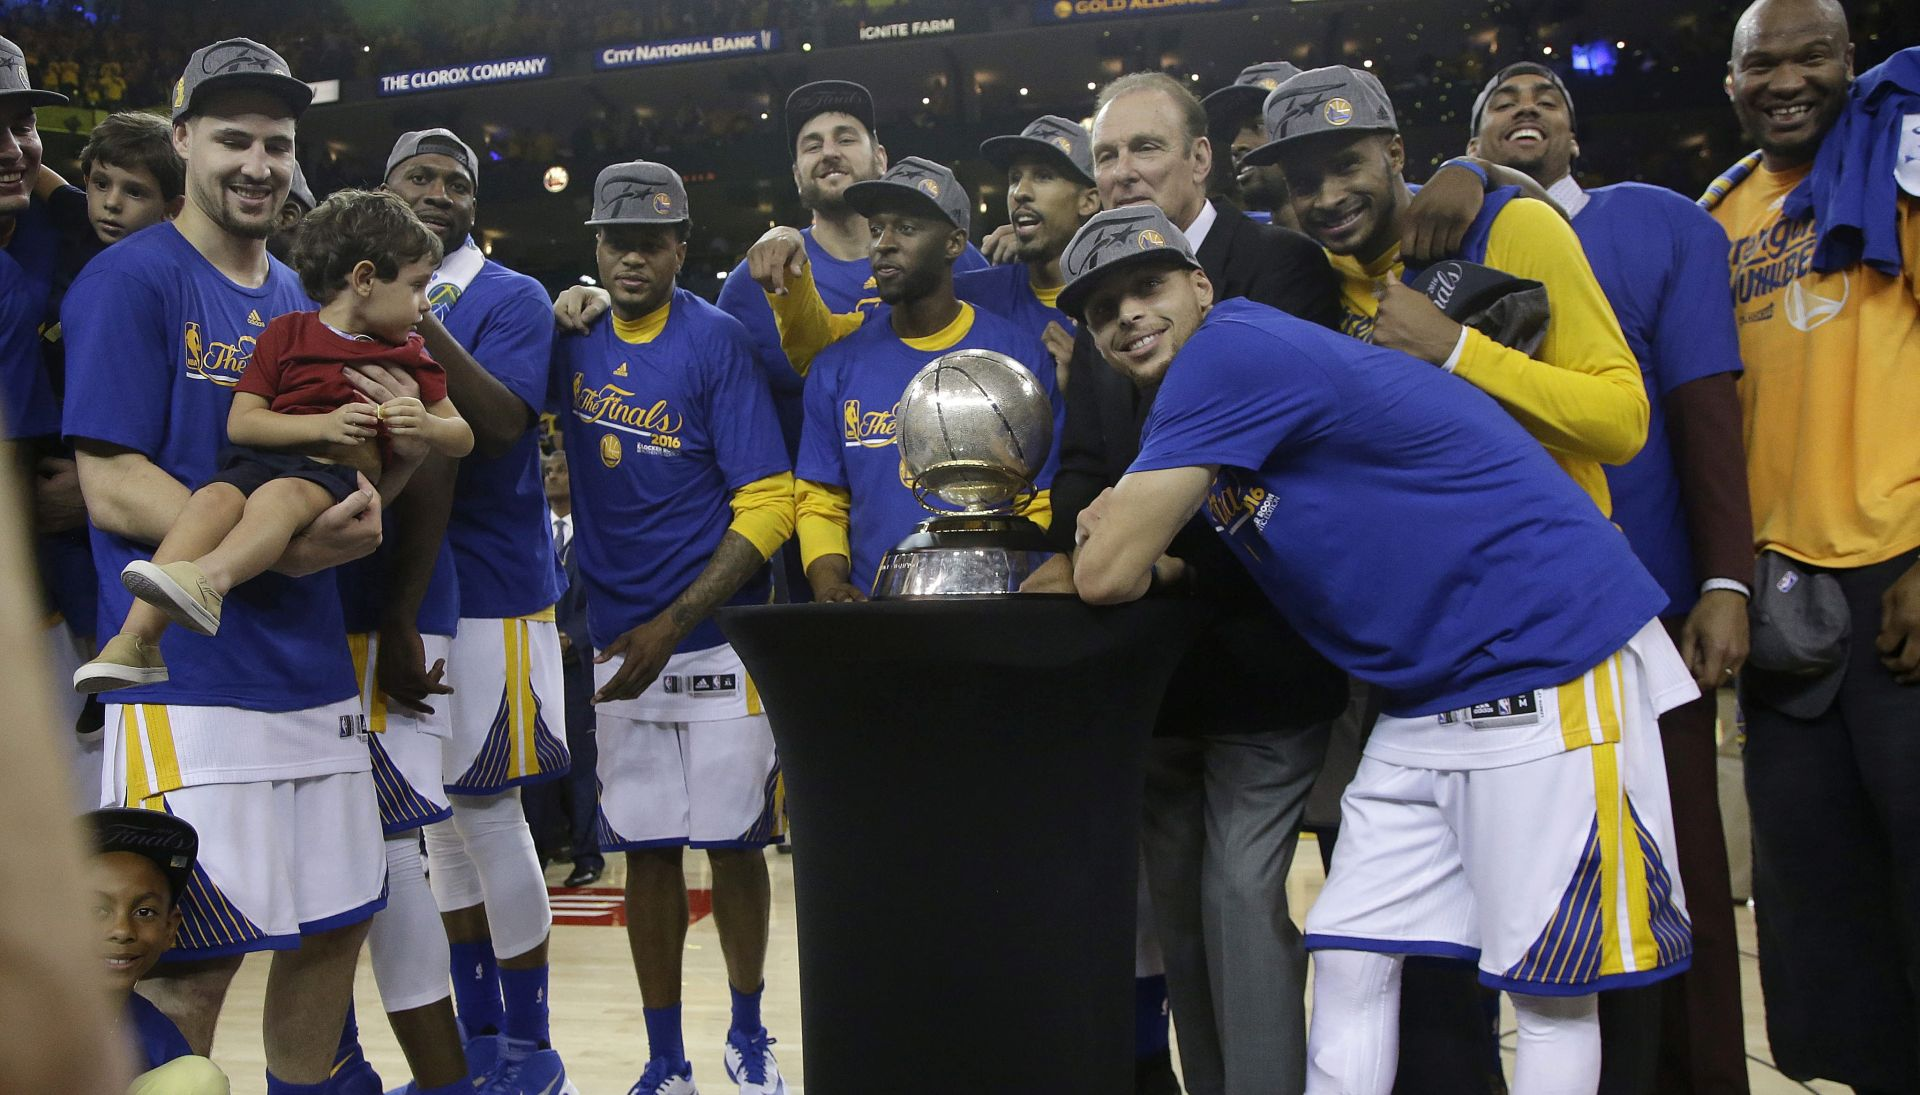 VIDEO: ČUDESNI PREOKRET AKTUALNIH PRVAKA Golden State Warriors u finalu